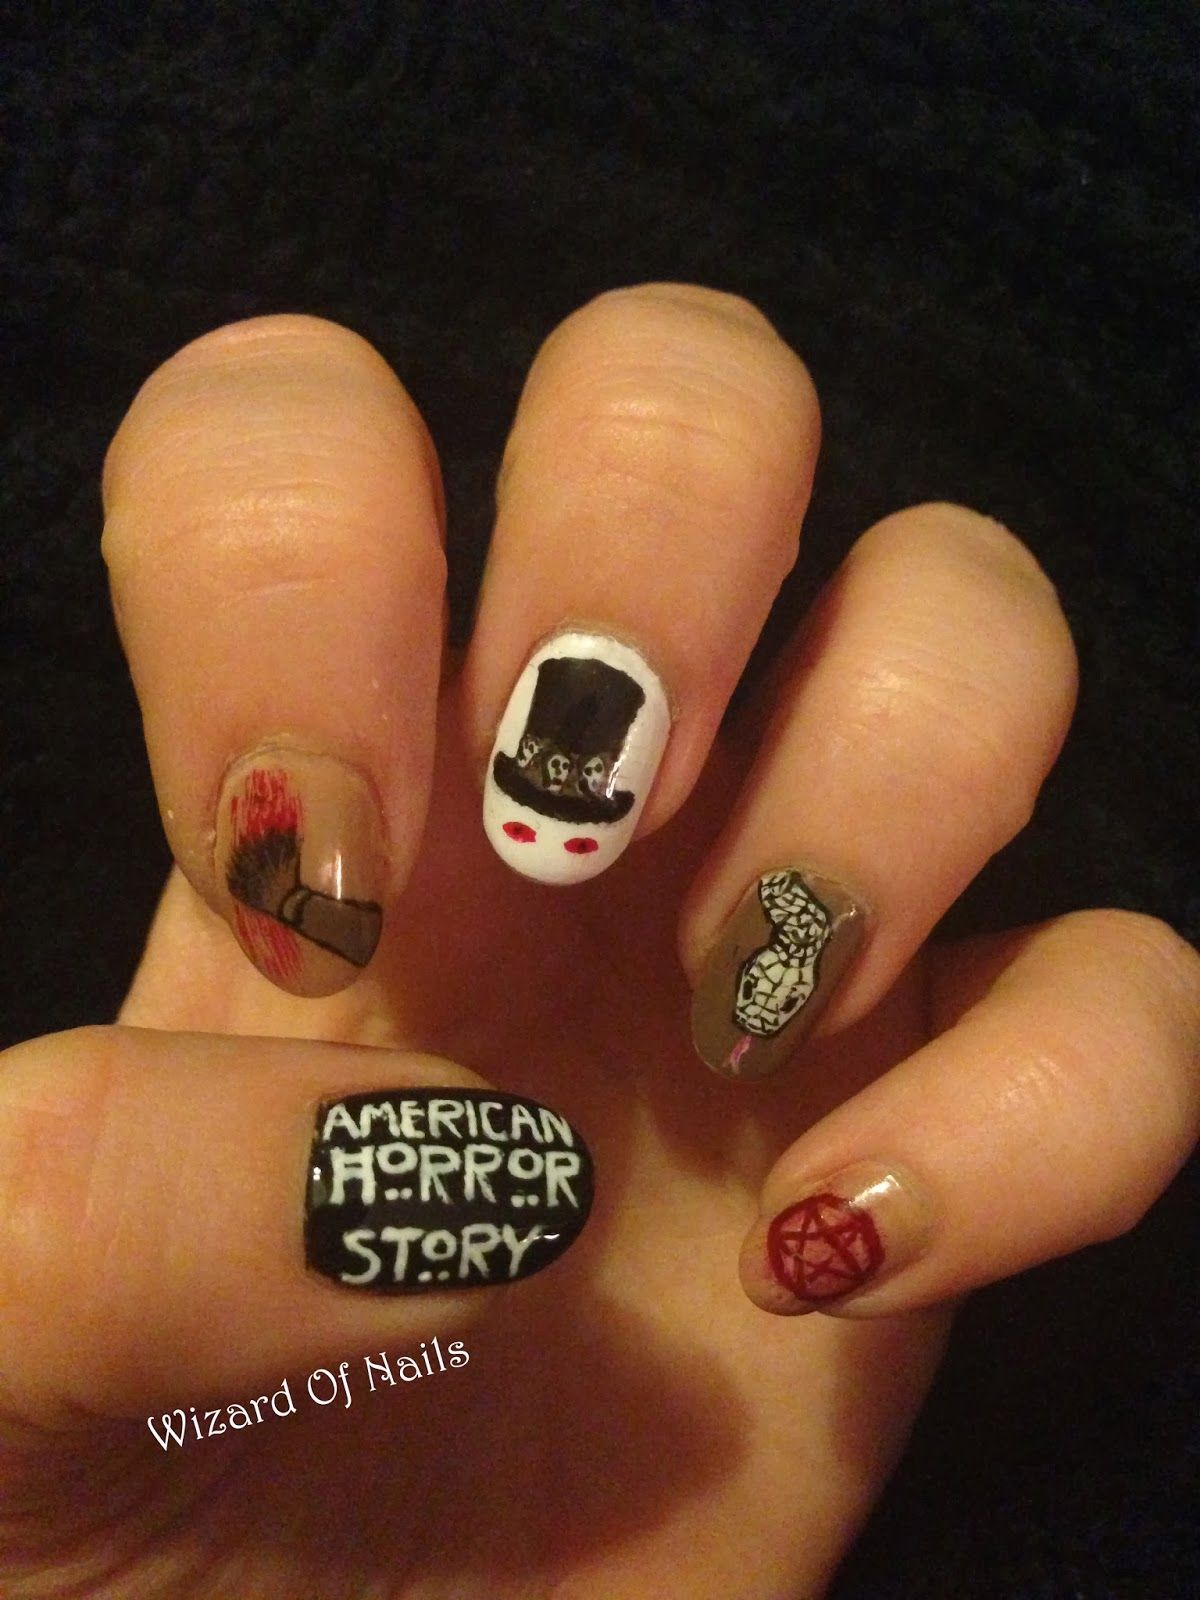 American Horror Story: Coven nails | Nail Decor | Pinterest ...